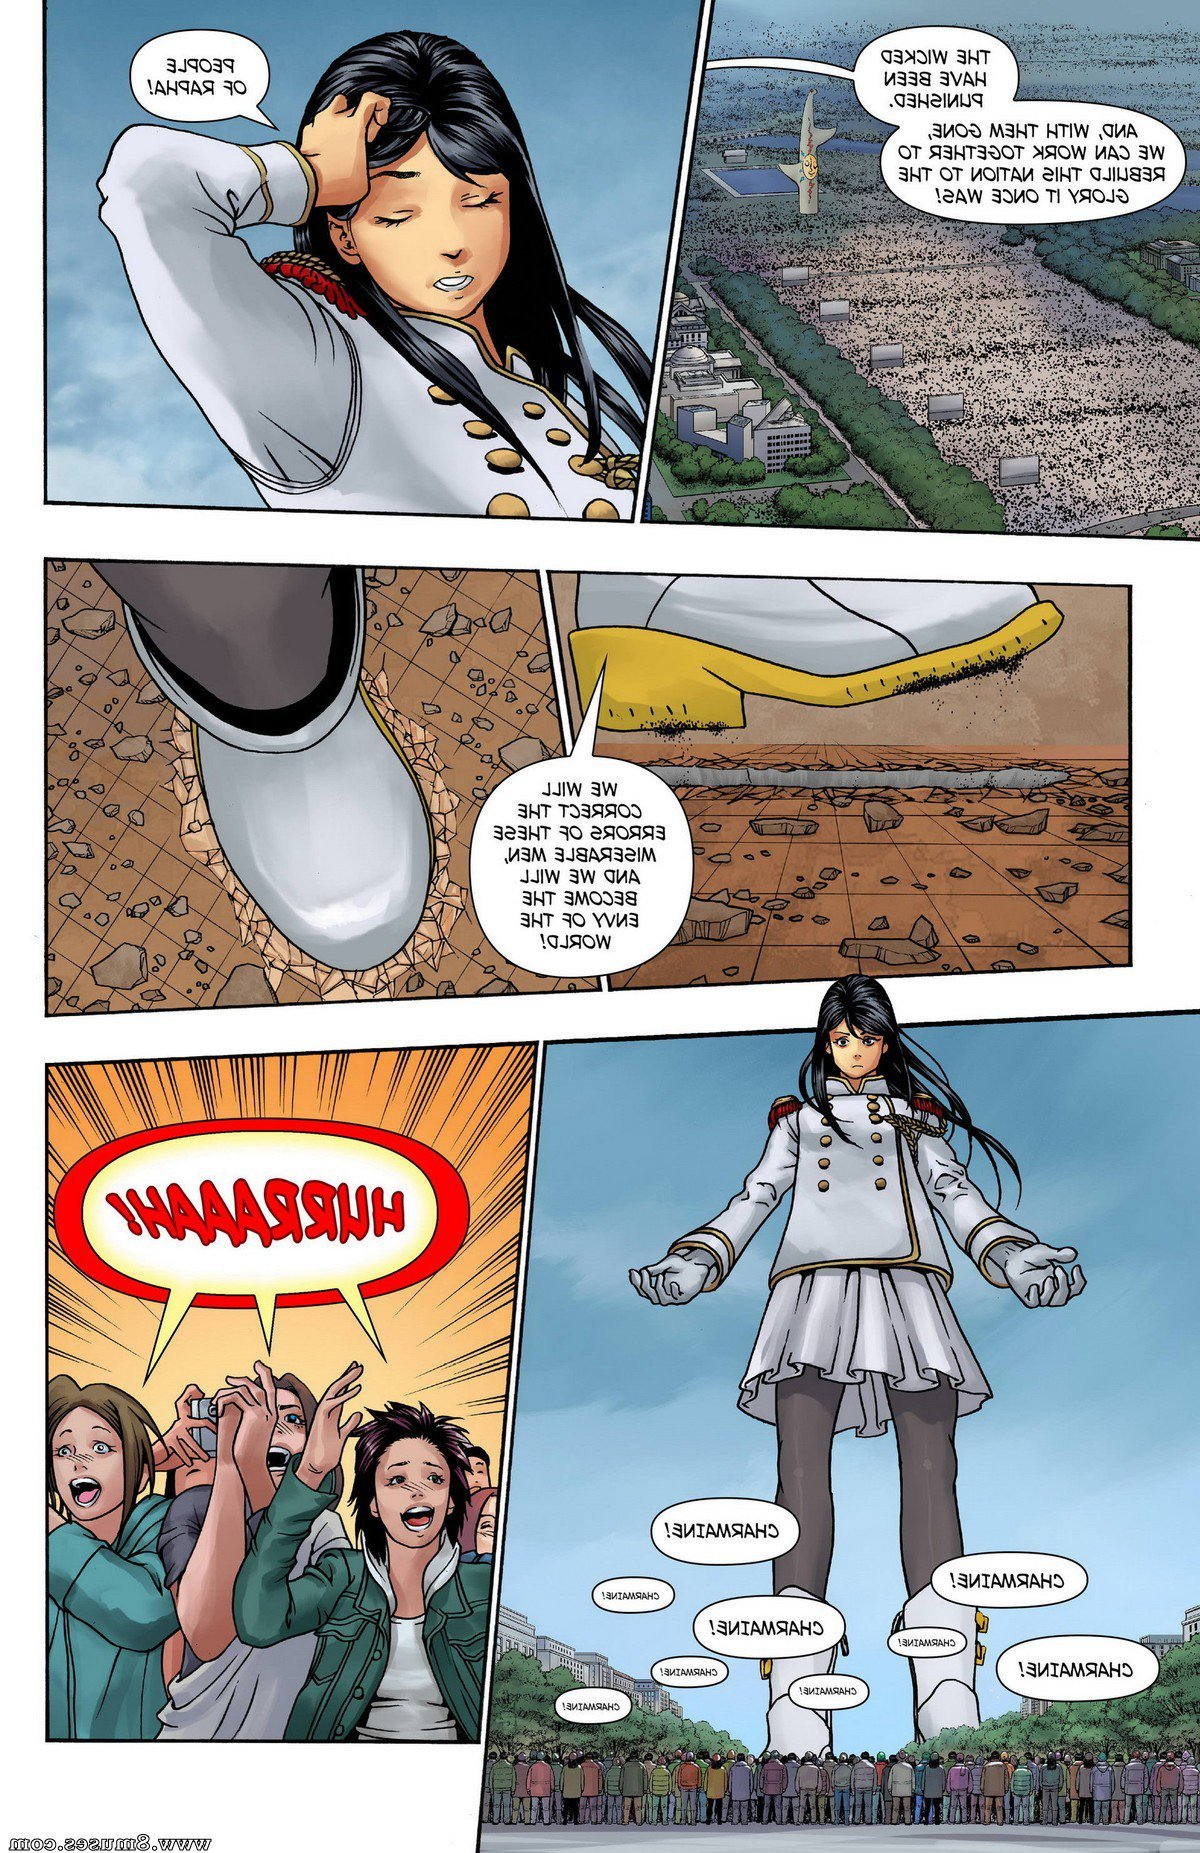 Giantess-Fan-Comics/Upheaval/Issue-1 Upheaval_-_Issue_1_16.jpg